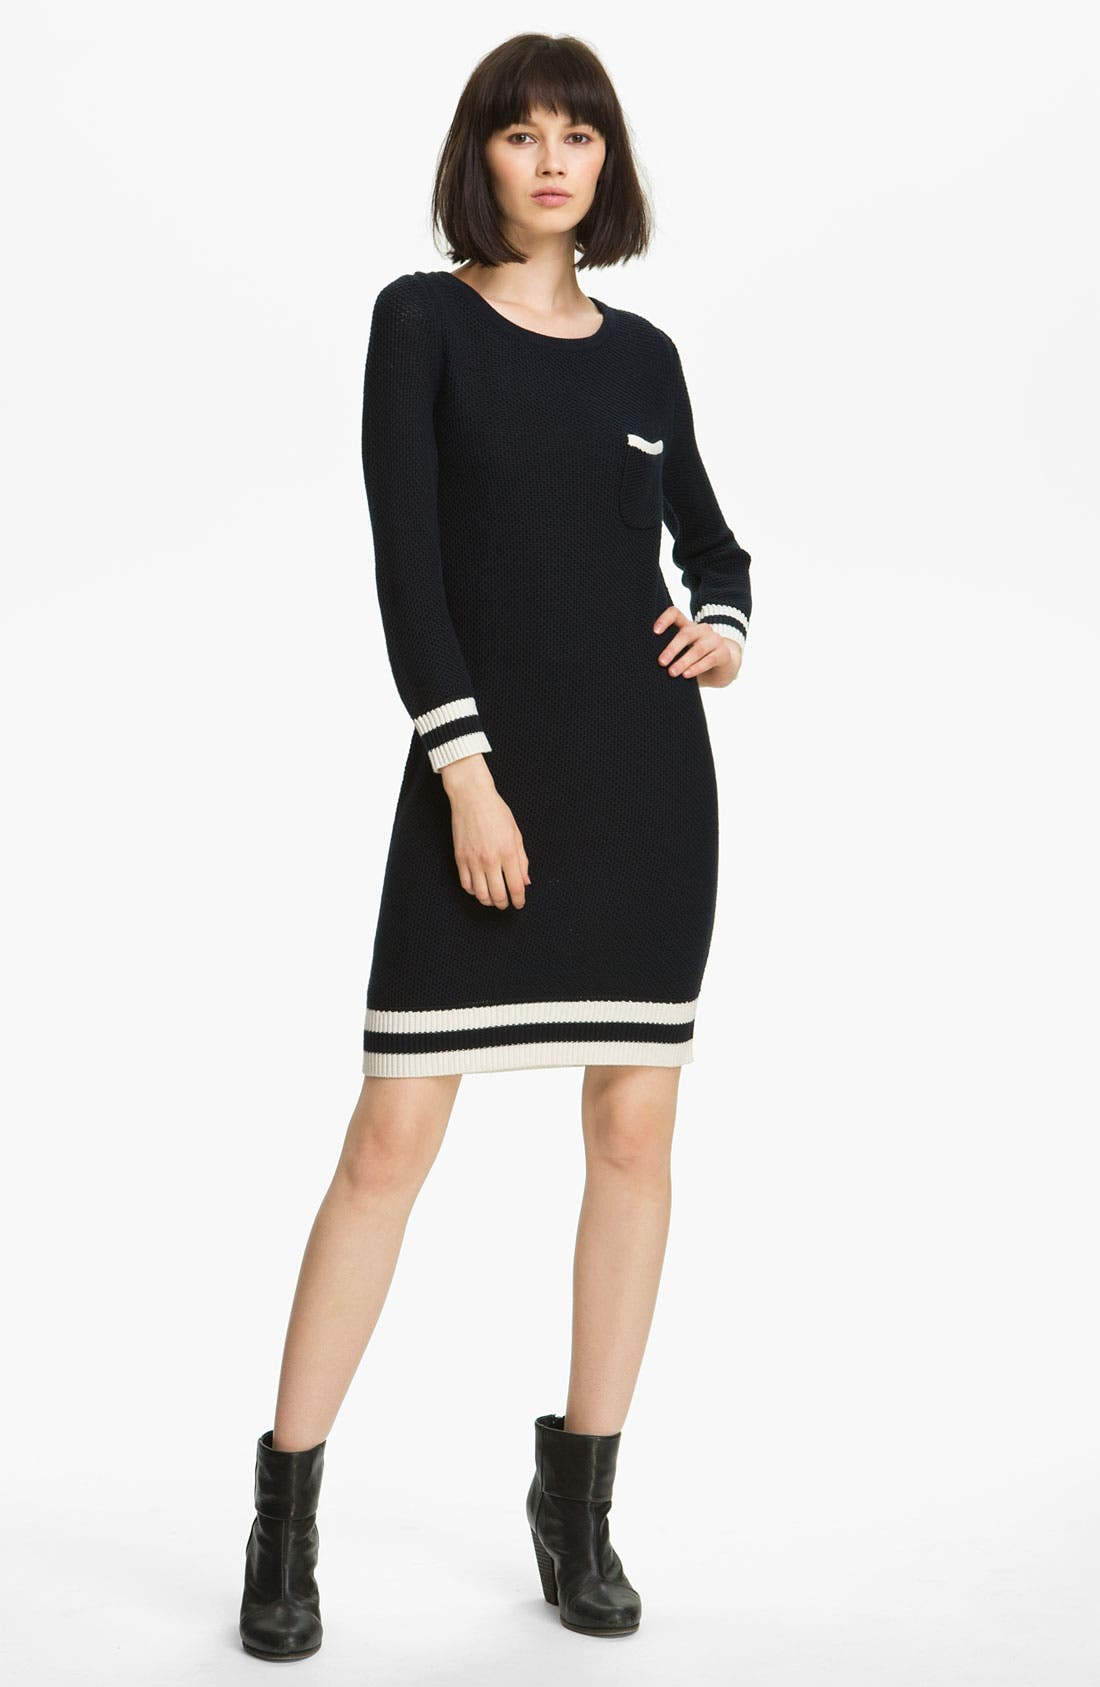 Alternate Image 1 Selected - rag & bone/KNIT 'Allison' Contrast Trim Dress